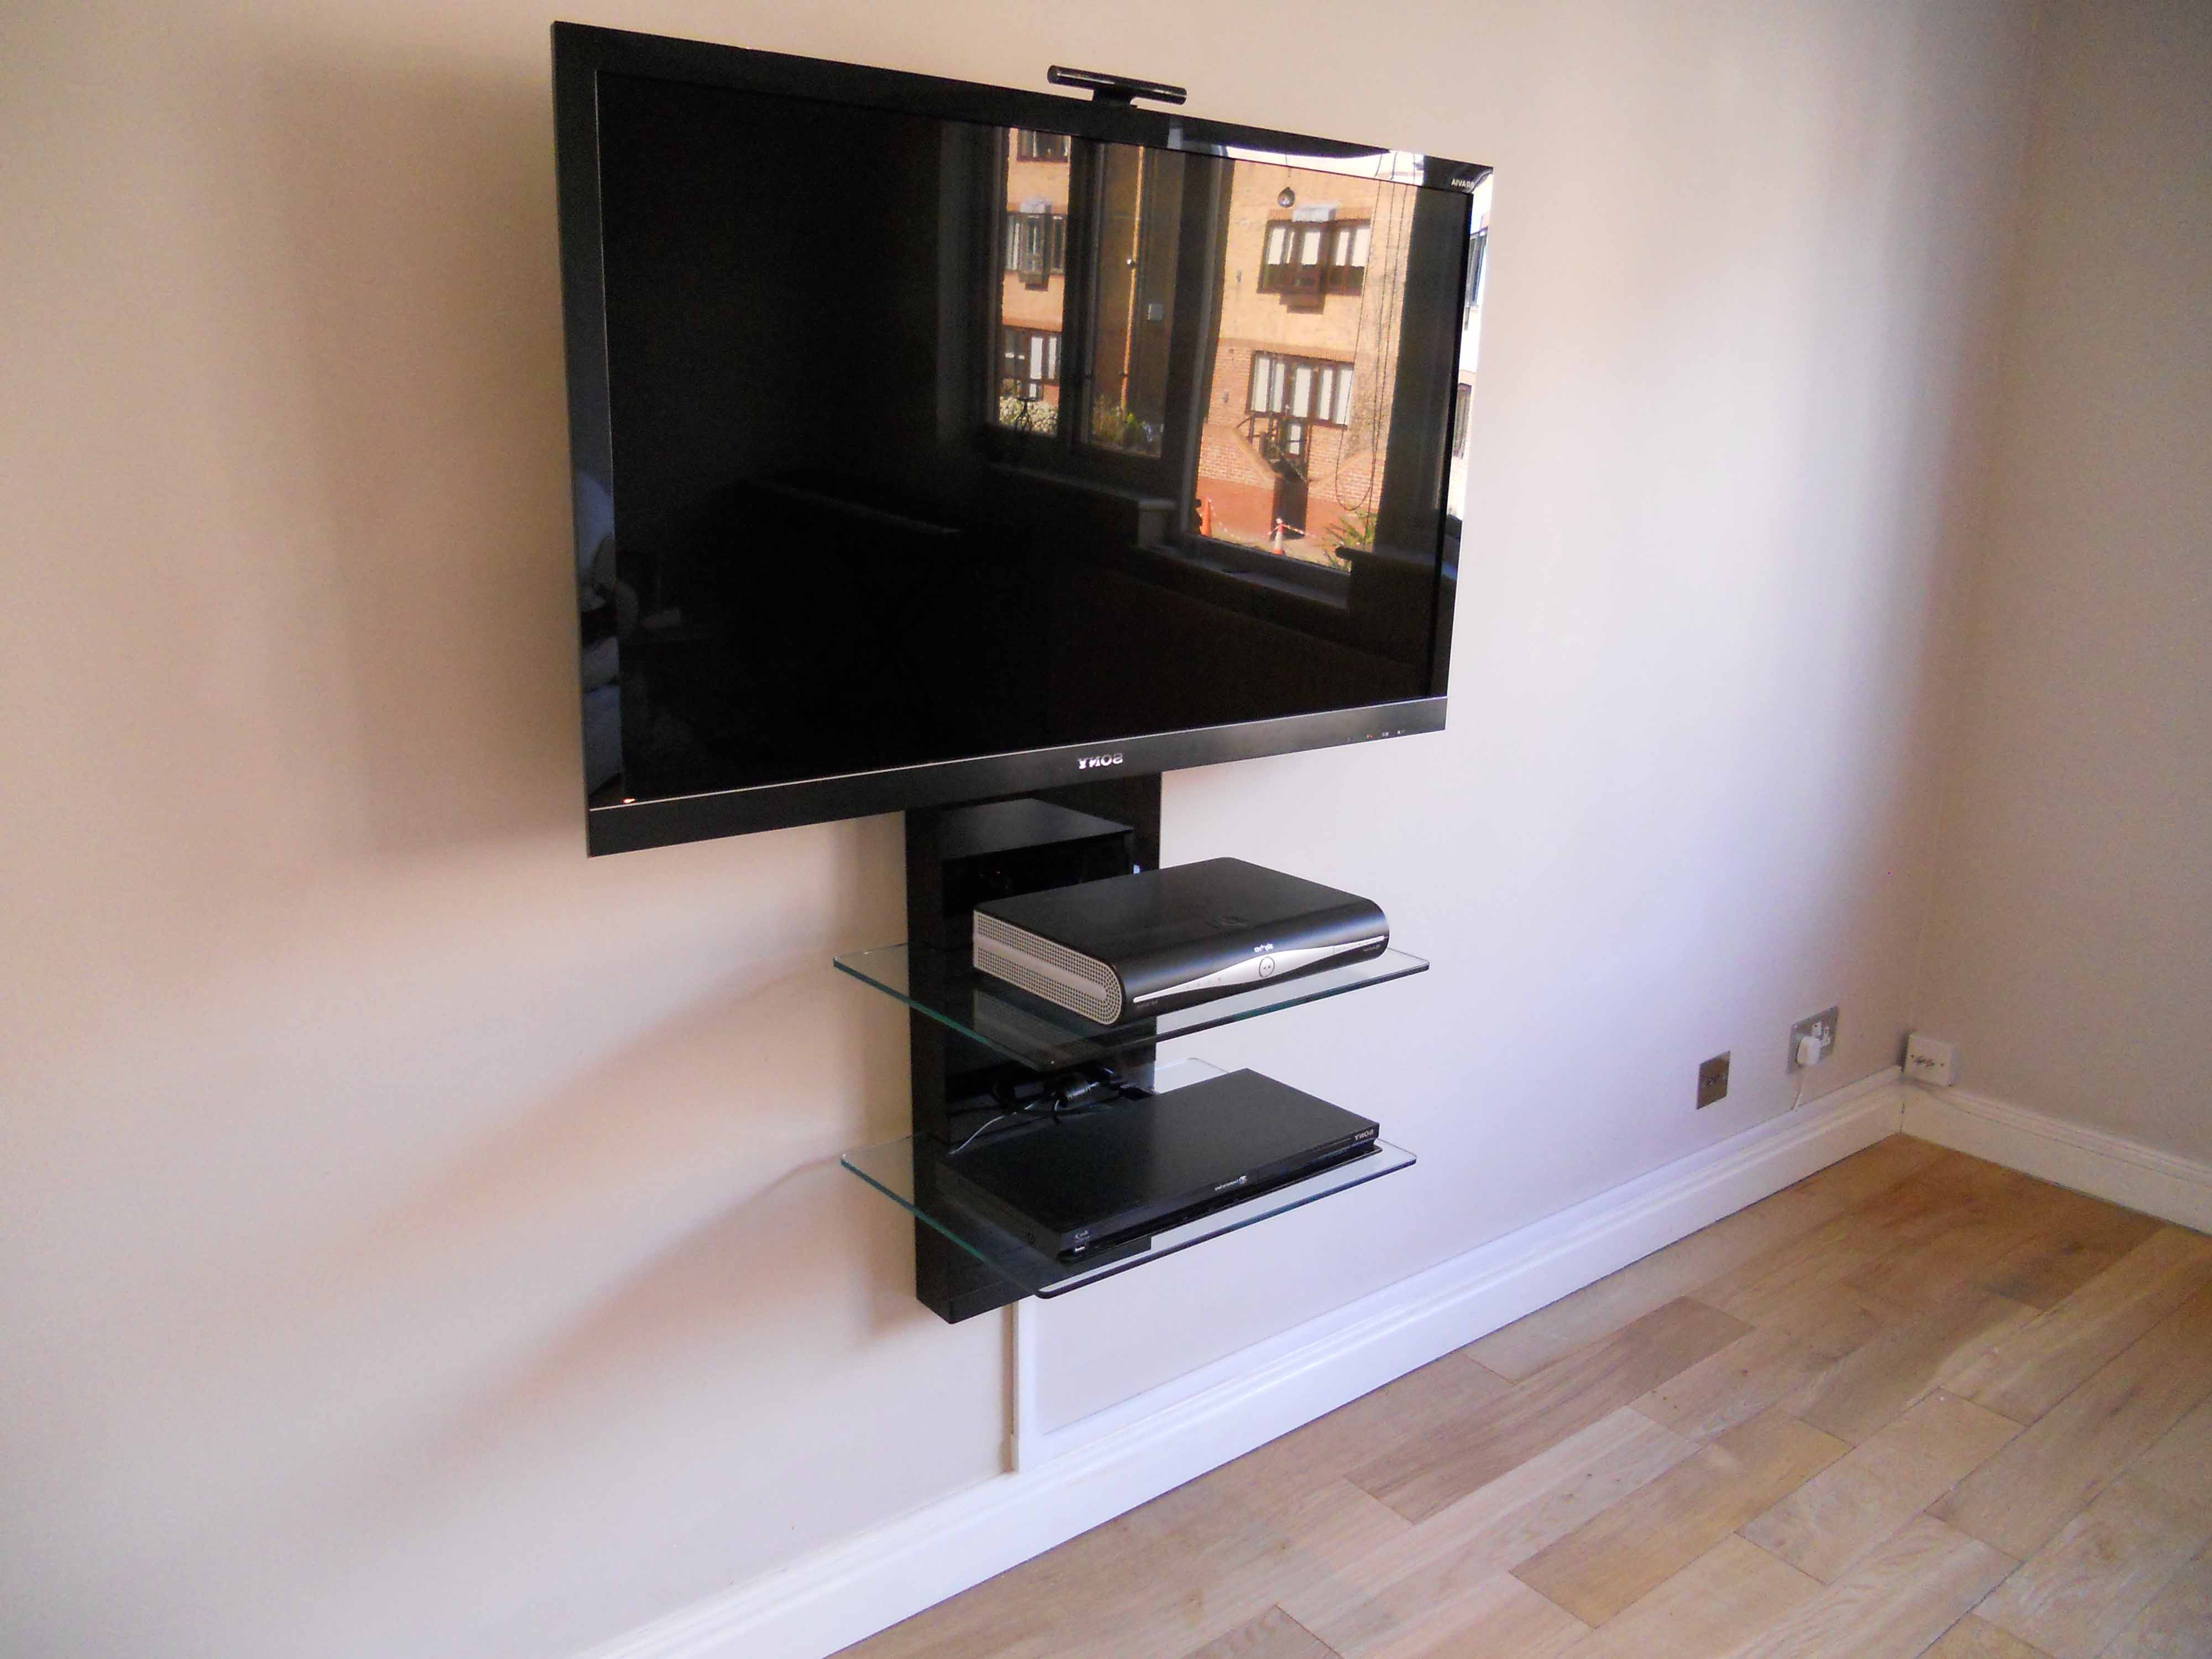 Most Recent Furniture Home With Black Metal Wall Mounted Tv Stand With Double For Wall Mounted Tv Stands With Shelves (View 20 of 20)